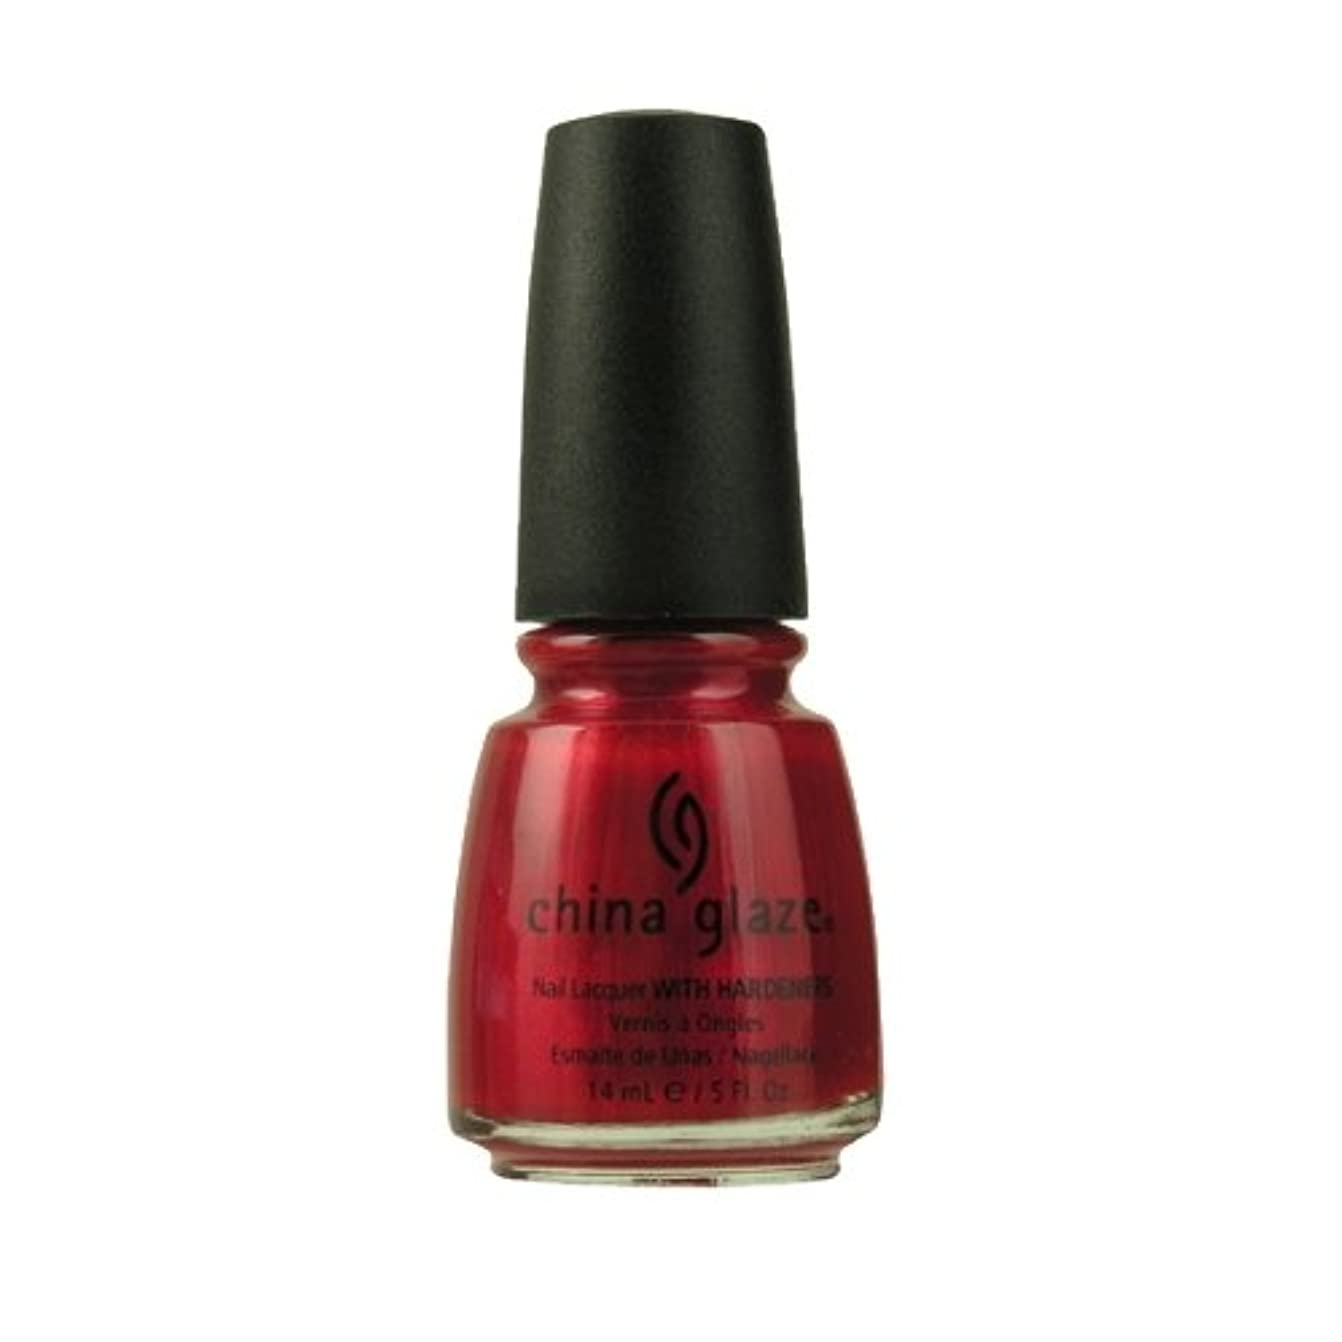 マウスハンドブック蛇行CHINA GLAZE Nail Lacquer with Nail Hardner - Red Pearl (並行輸入品)